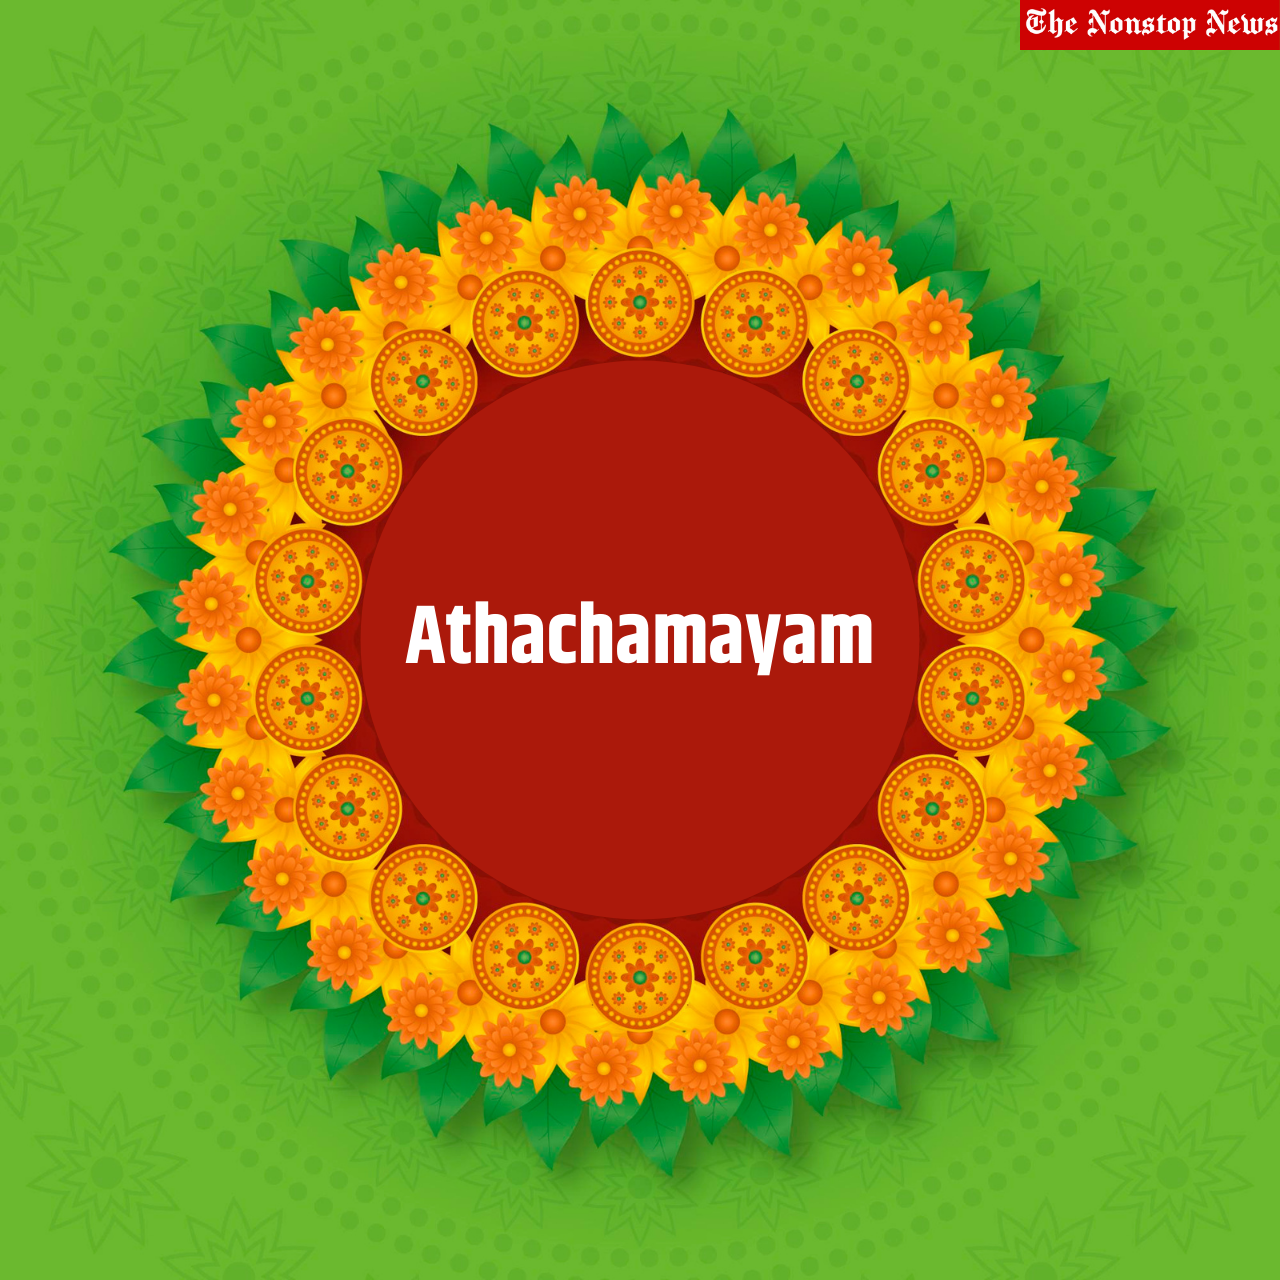 Athachamayam 2021 Wishes, Images, Quotes, Greetings, Messages, and Status to Share